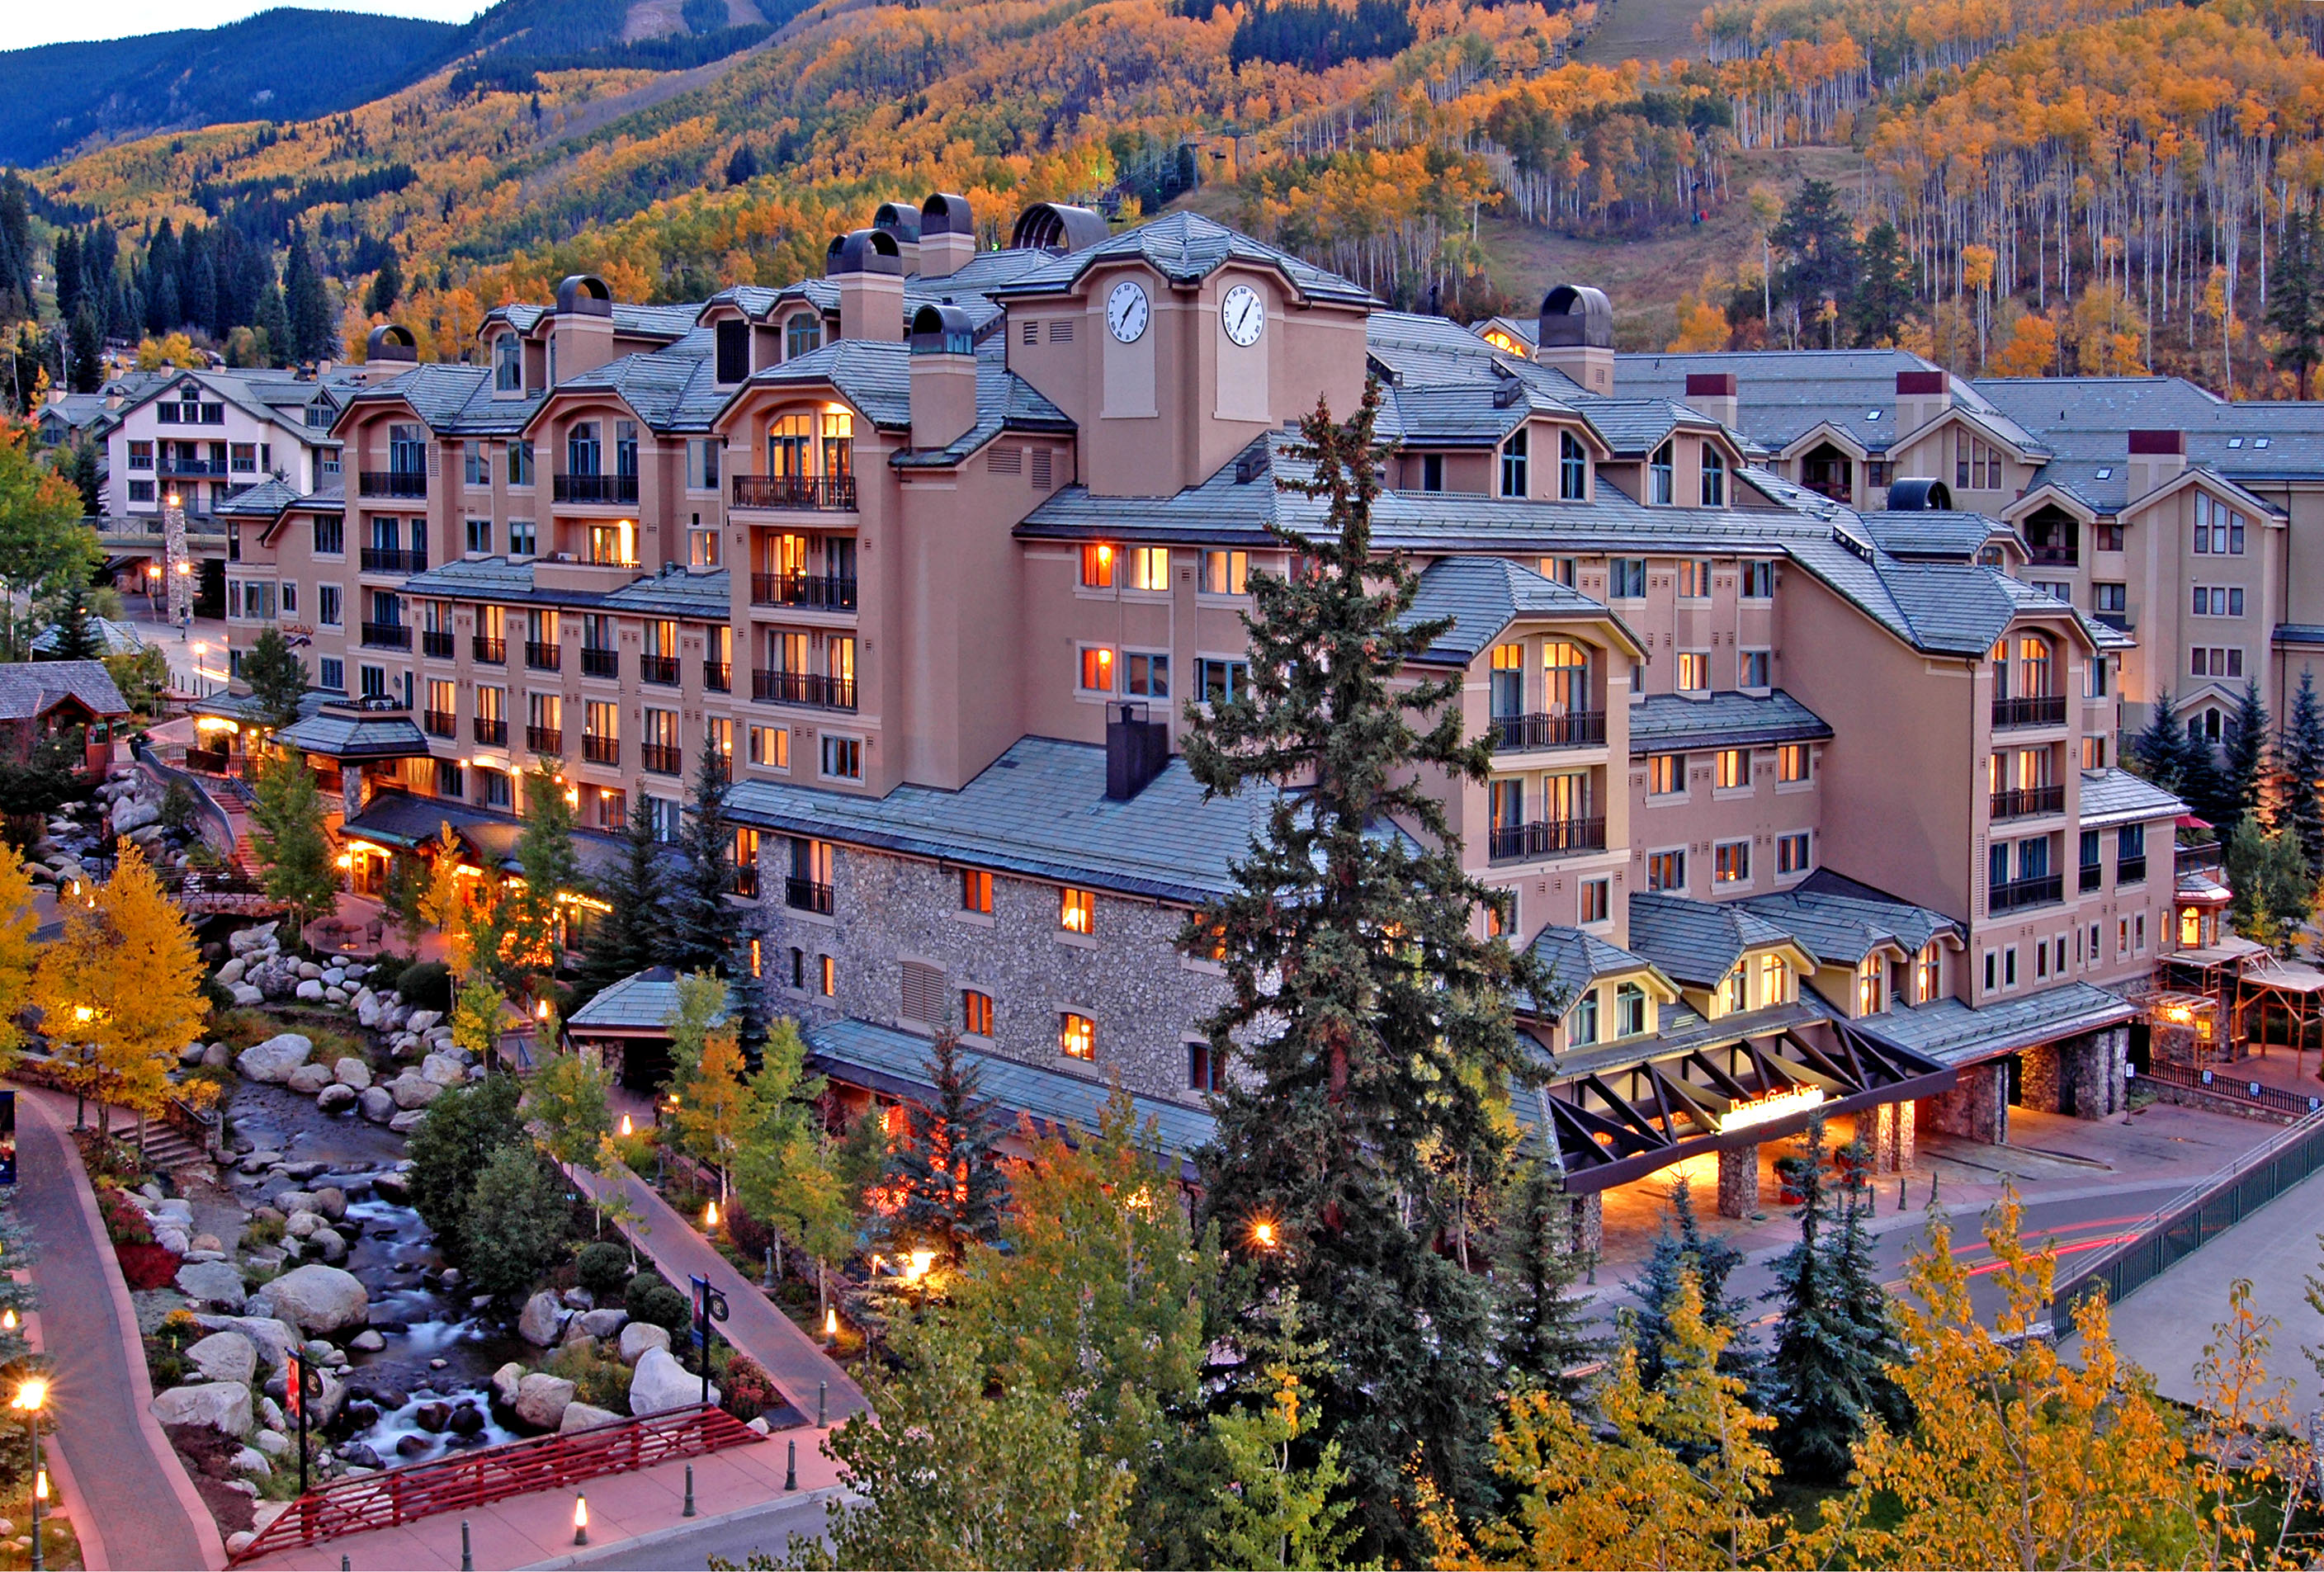 Residence at Park Hyatt Beaver Creek